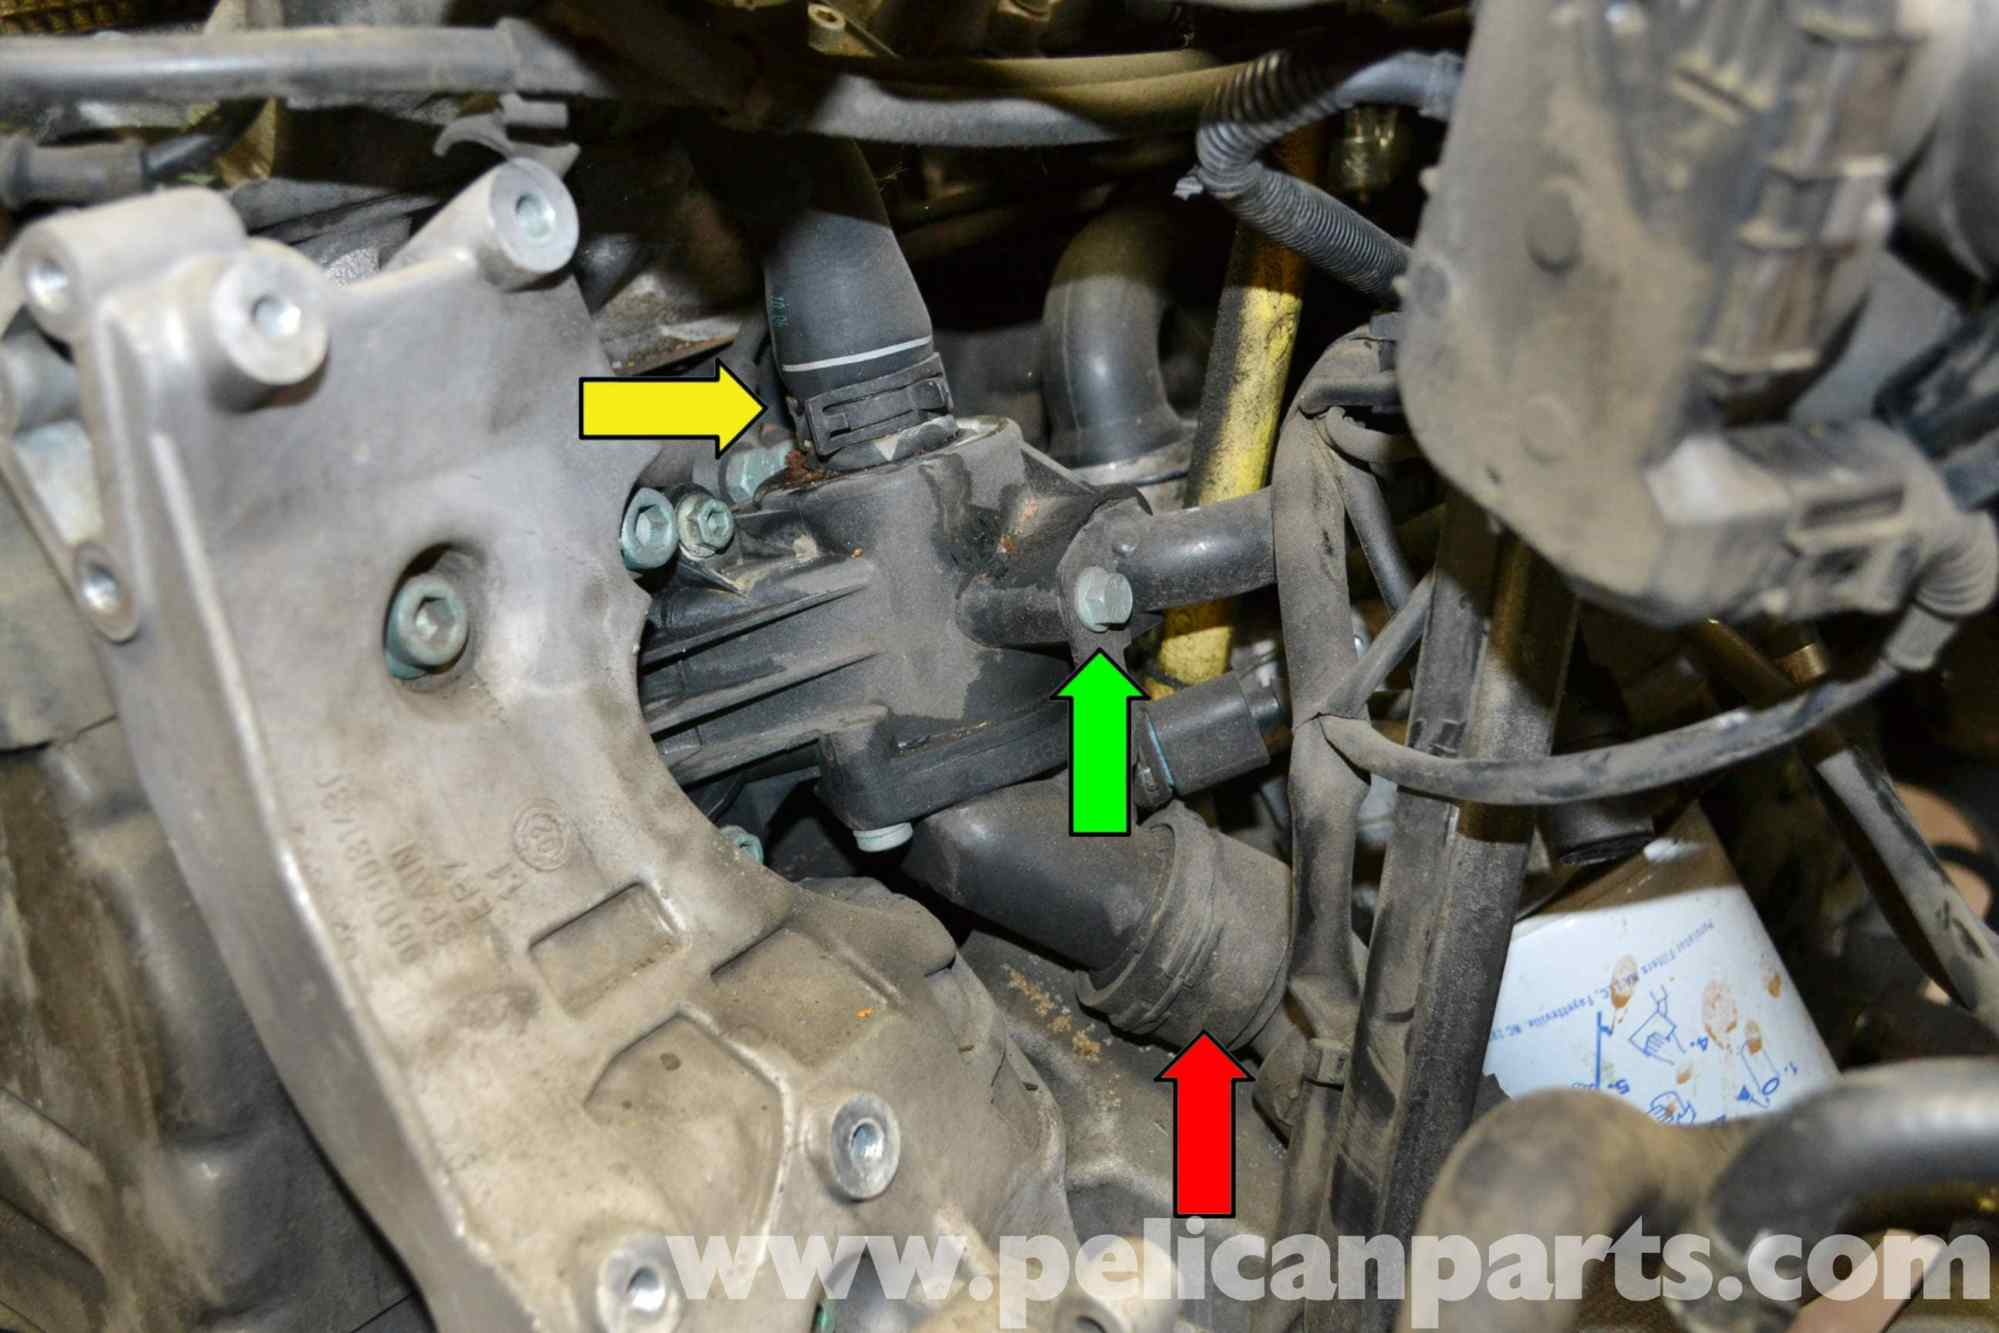 hight resolution of audi a4 3 2 thermostat replacement 1999 audi a6 quattro thermostat location get free image audi a4 b6 thermostat replacement